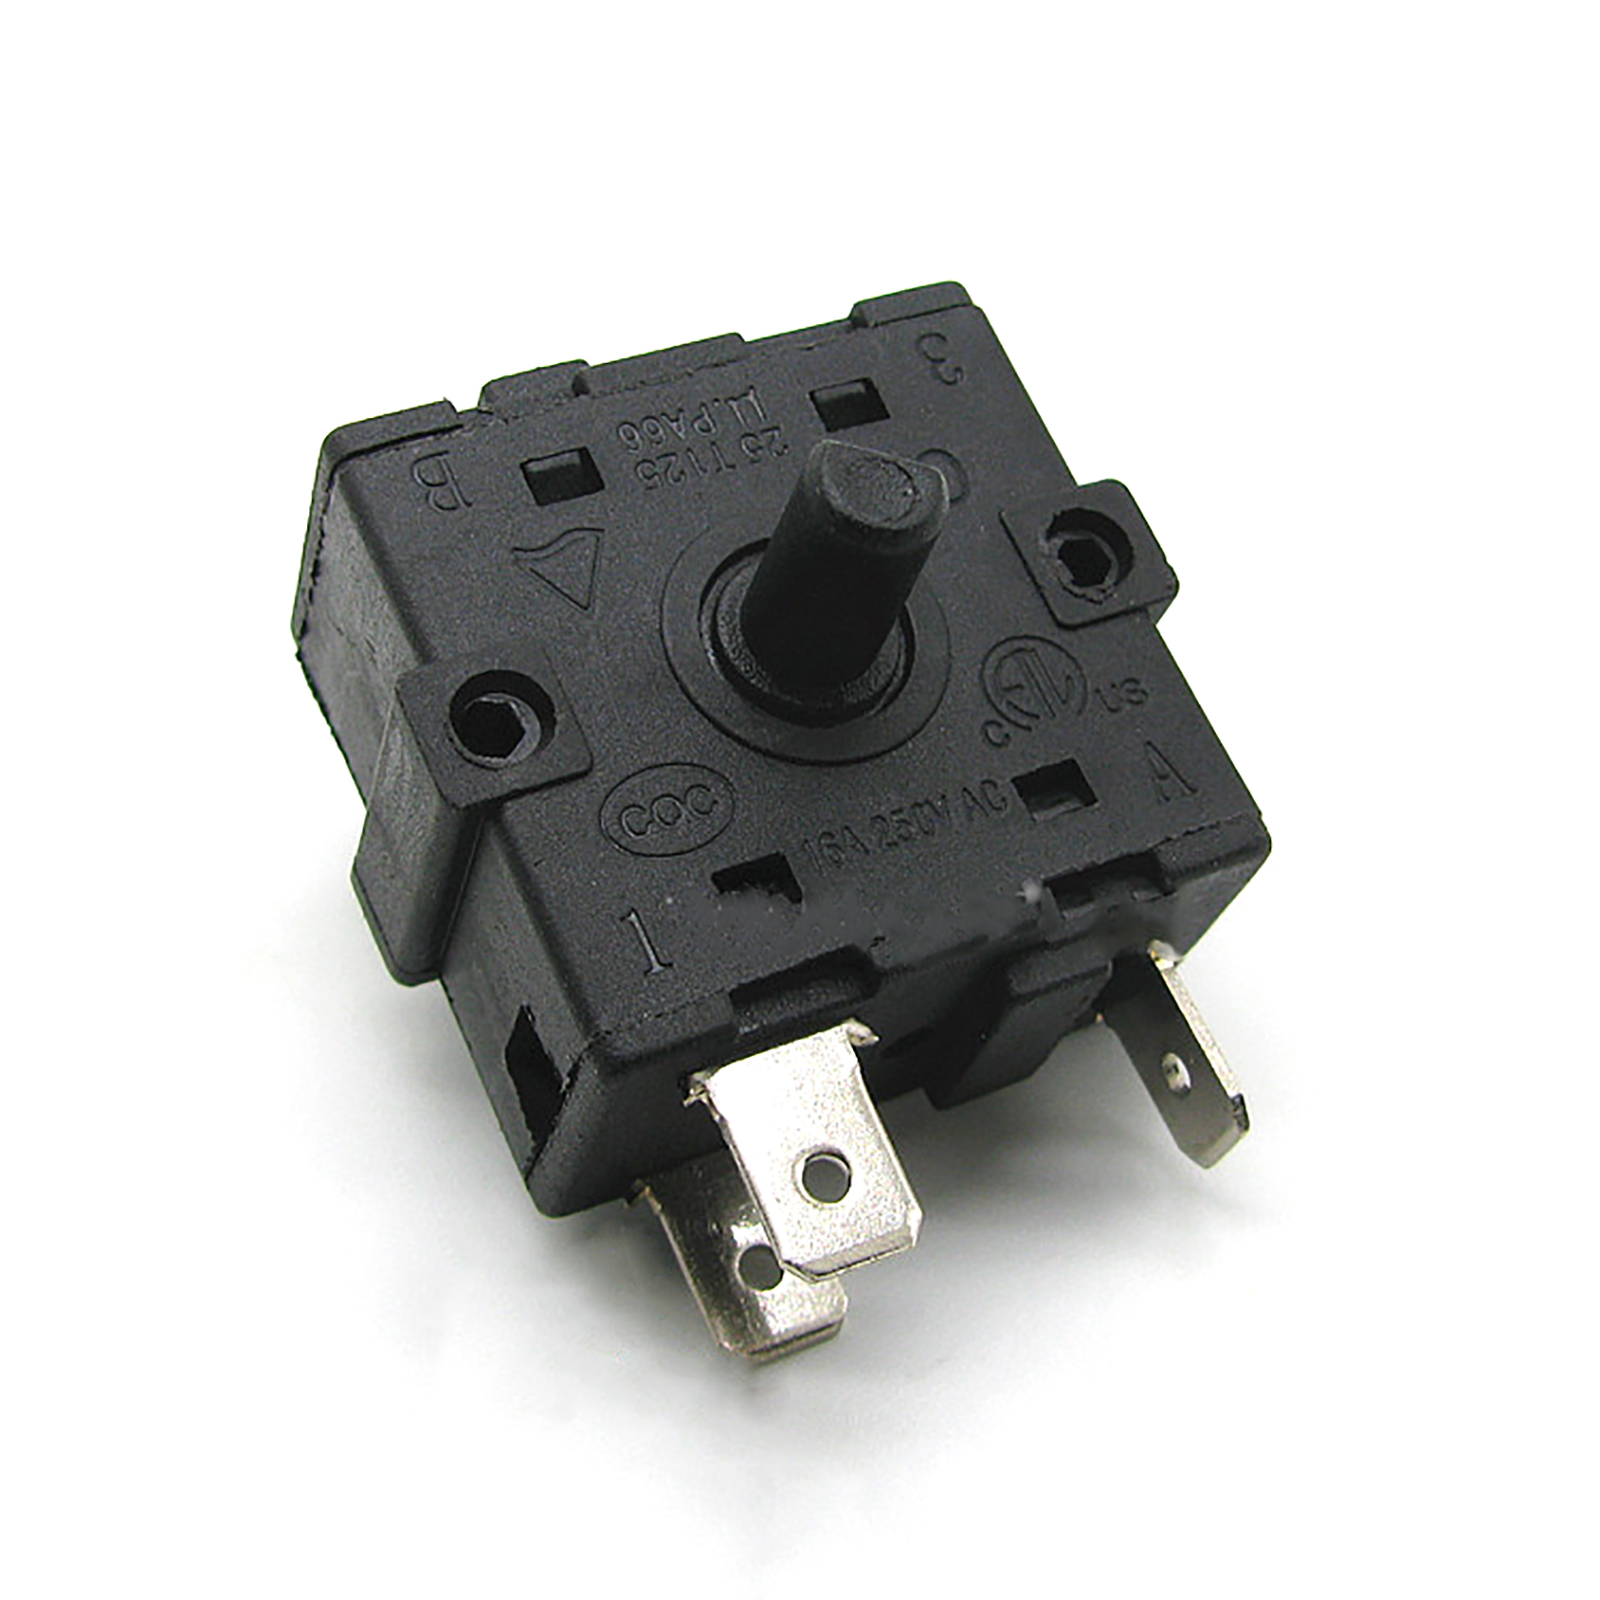 1PC 3Pin Rotary Switch 16A 250V AC For Electric Heater Radiator Repair Parts Accessories